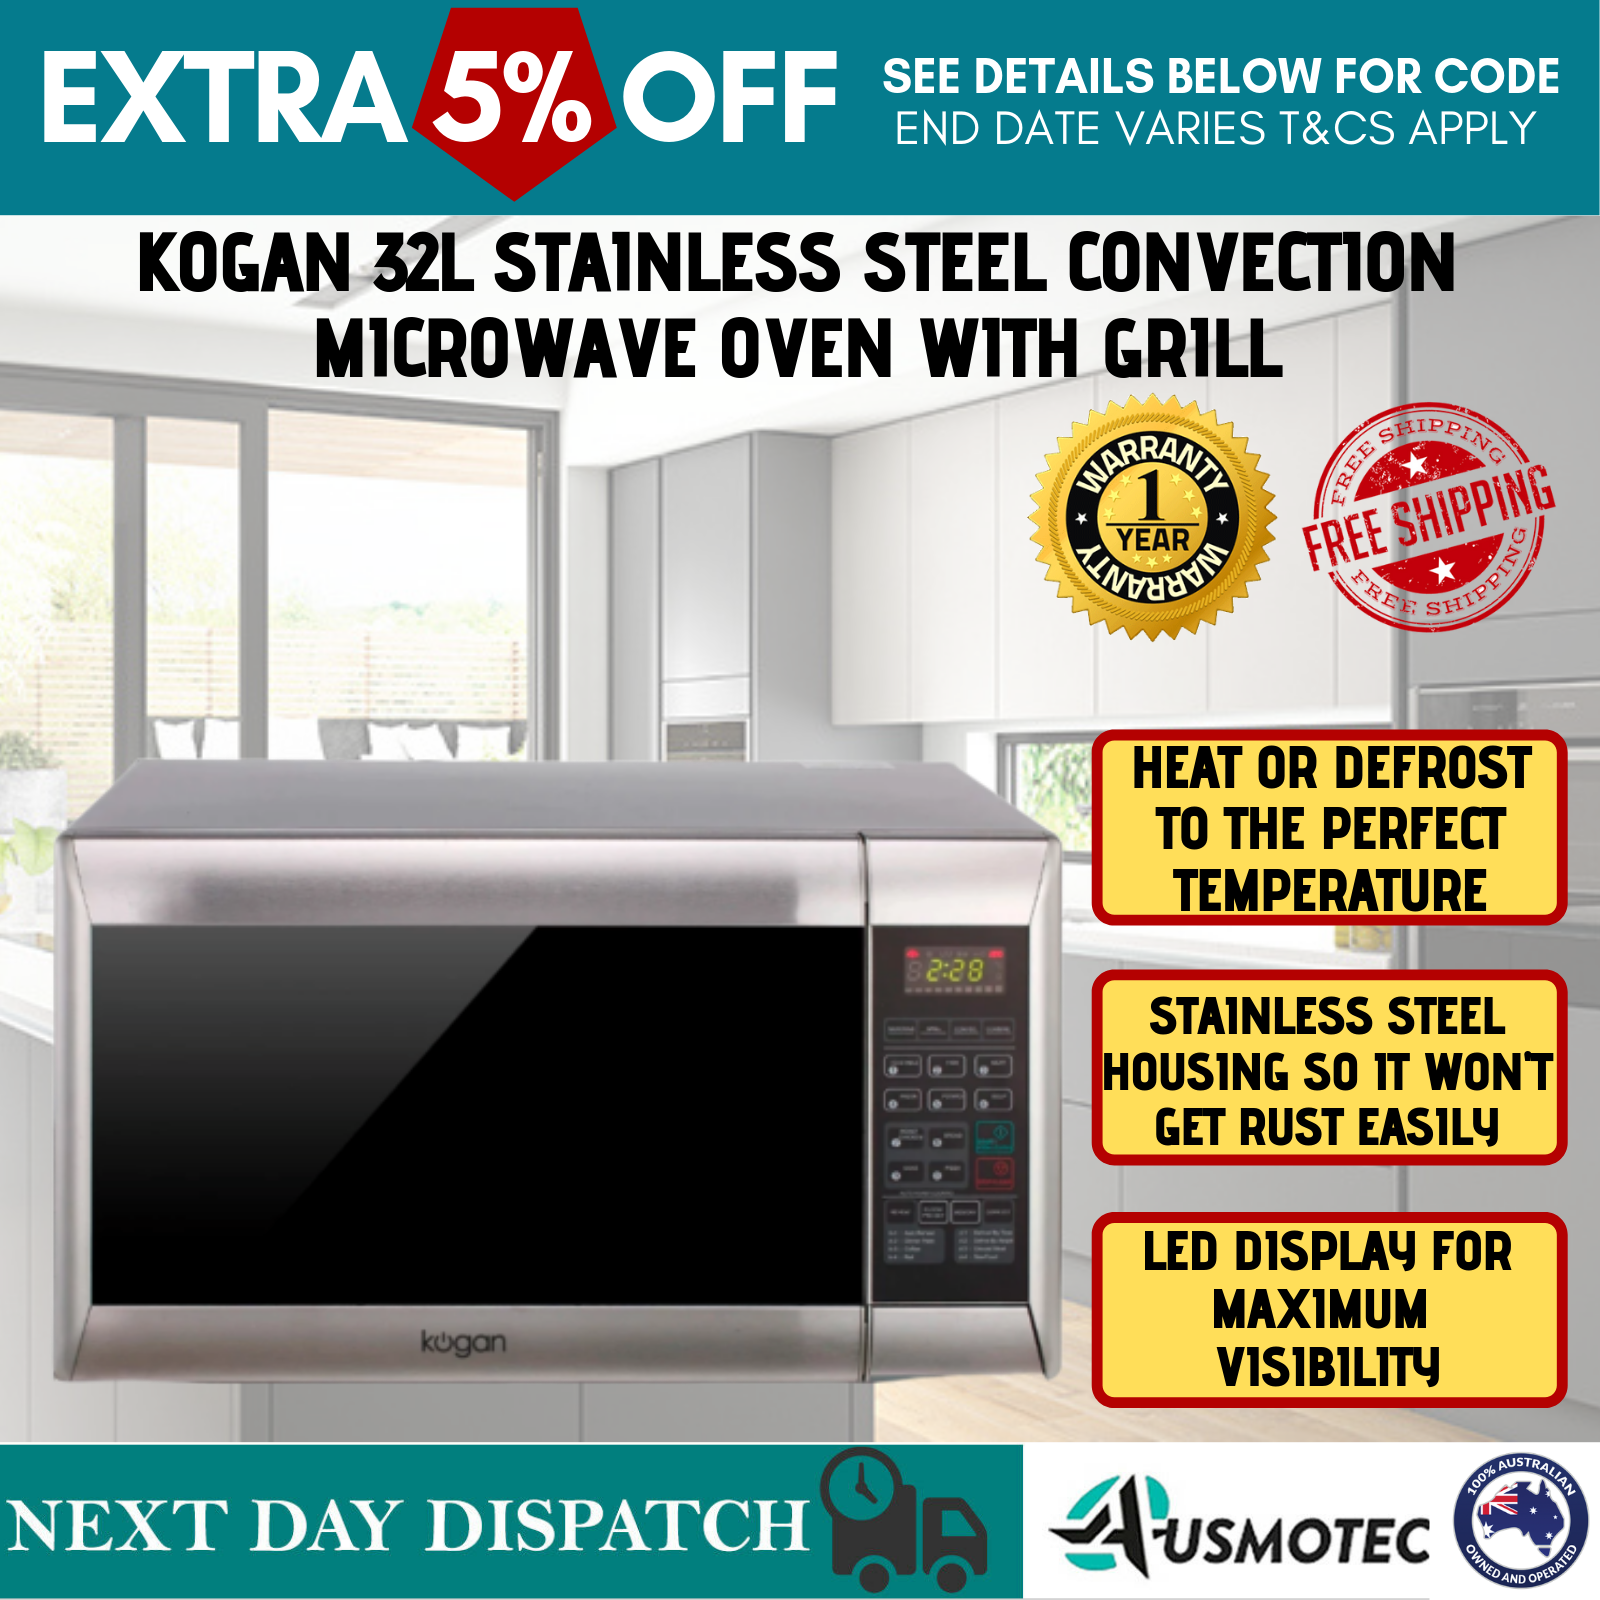 32l Stainless Steel Convection Microwave Oven With Grill: Kogan 32L Stainless Steel Convection Microwave Oven With